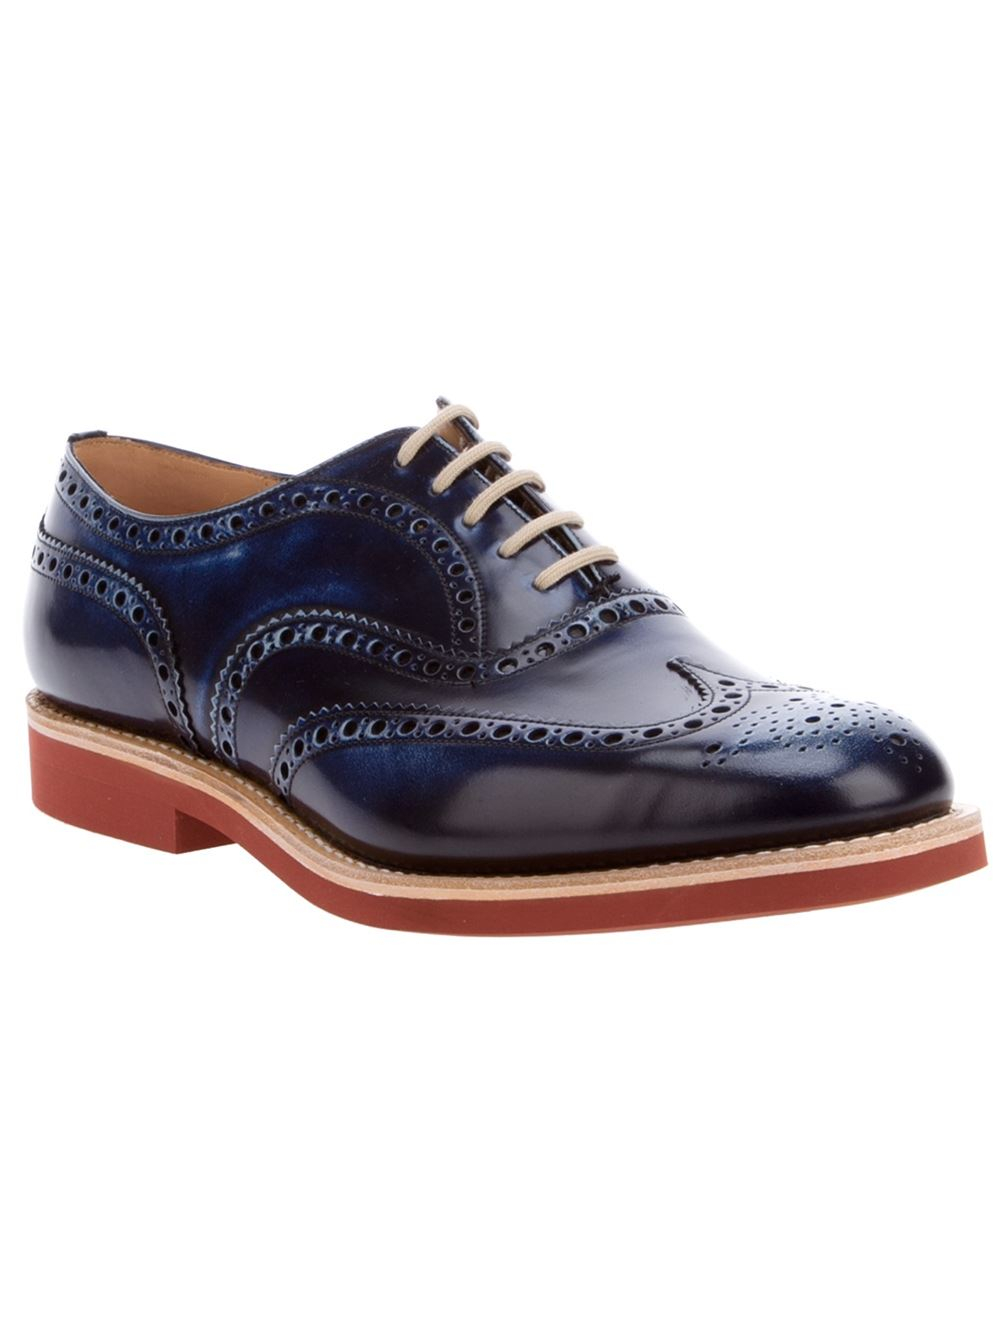 Discover Dune London's range of men's brogues. A wear-with-anything style that will easily take you from the office to the bar. The classic wardrobe staple and a must have for the season. Give your classic Oxford, Gibson or Derby styles a modern twist with burnished details, color pop soles or.